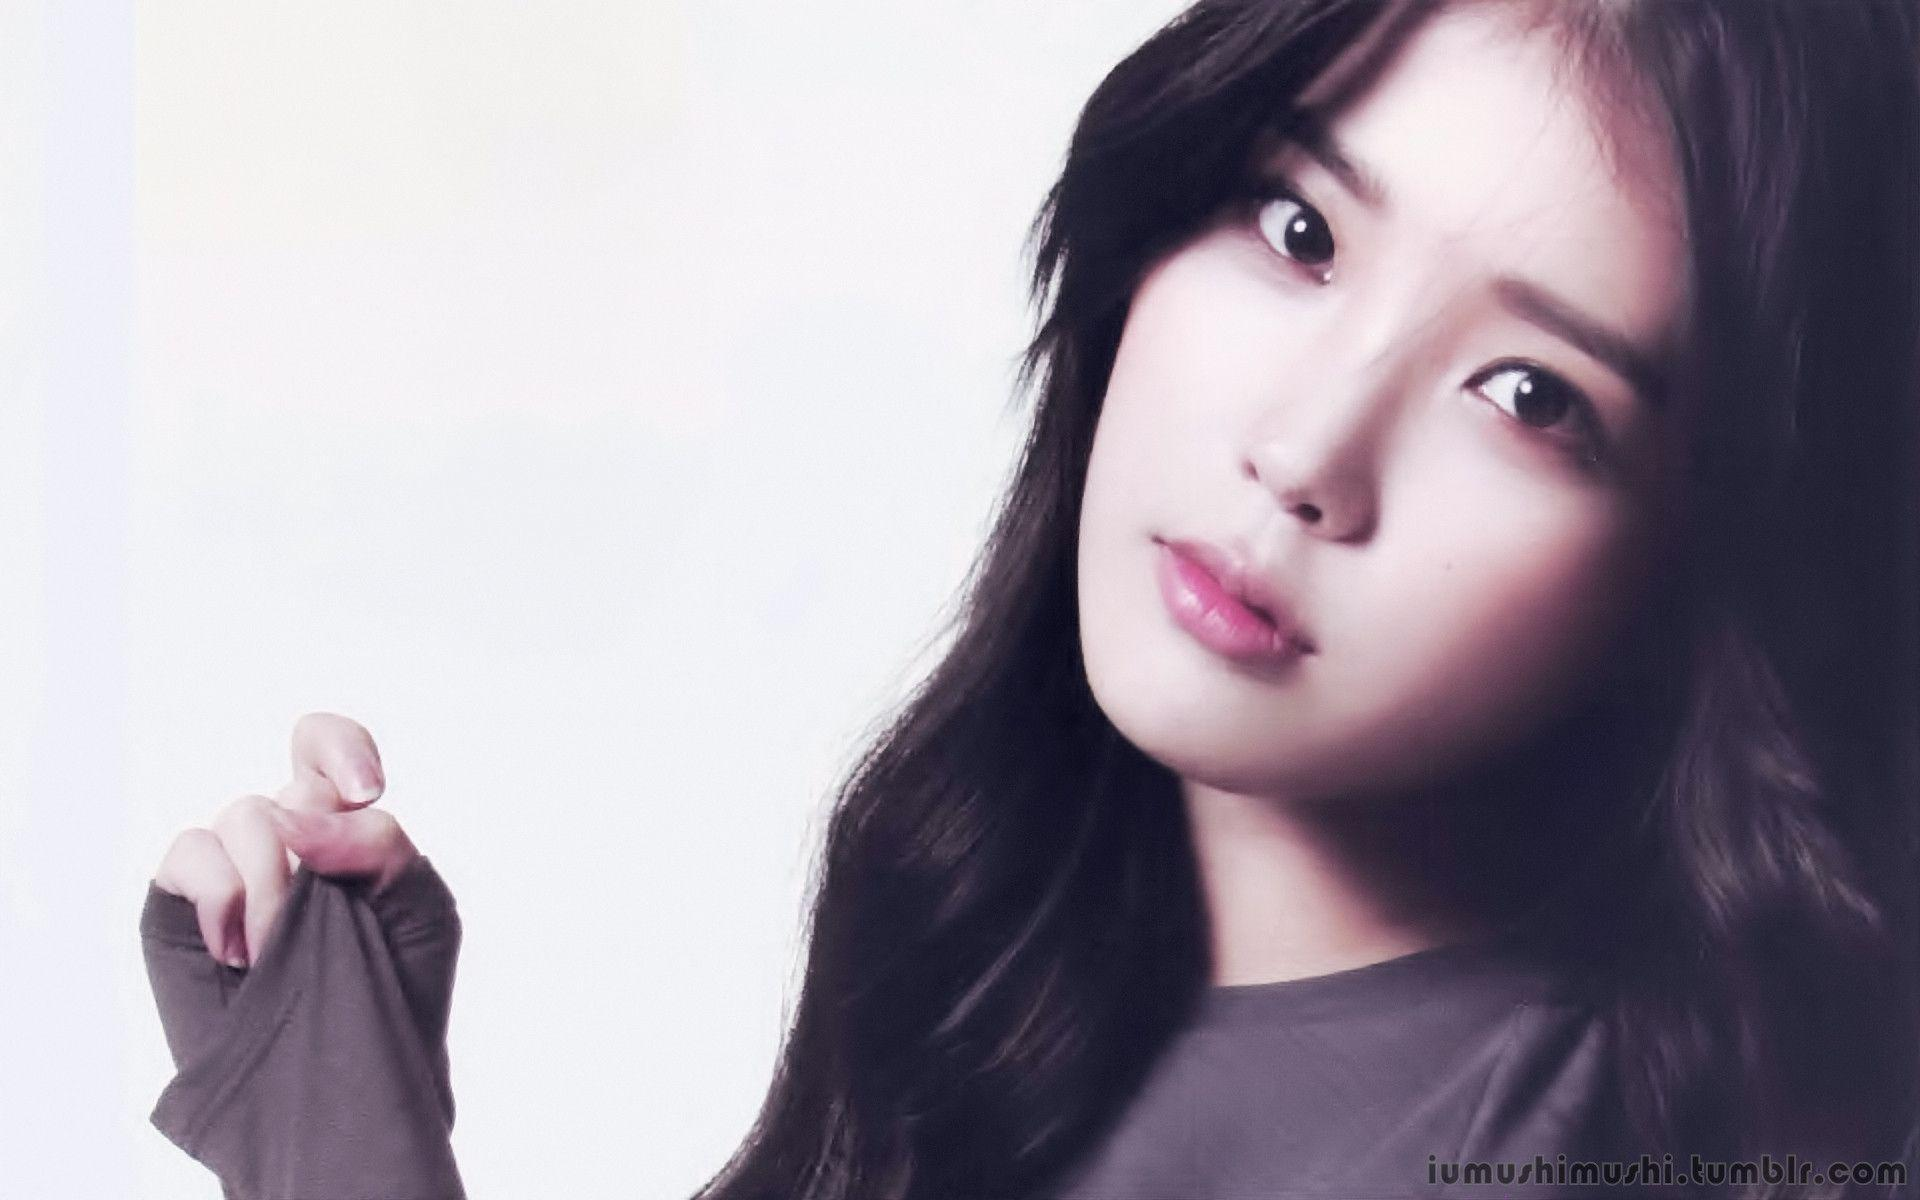 Iu wallpapers wallpaper cave Video hd4